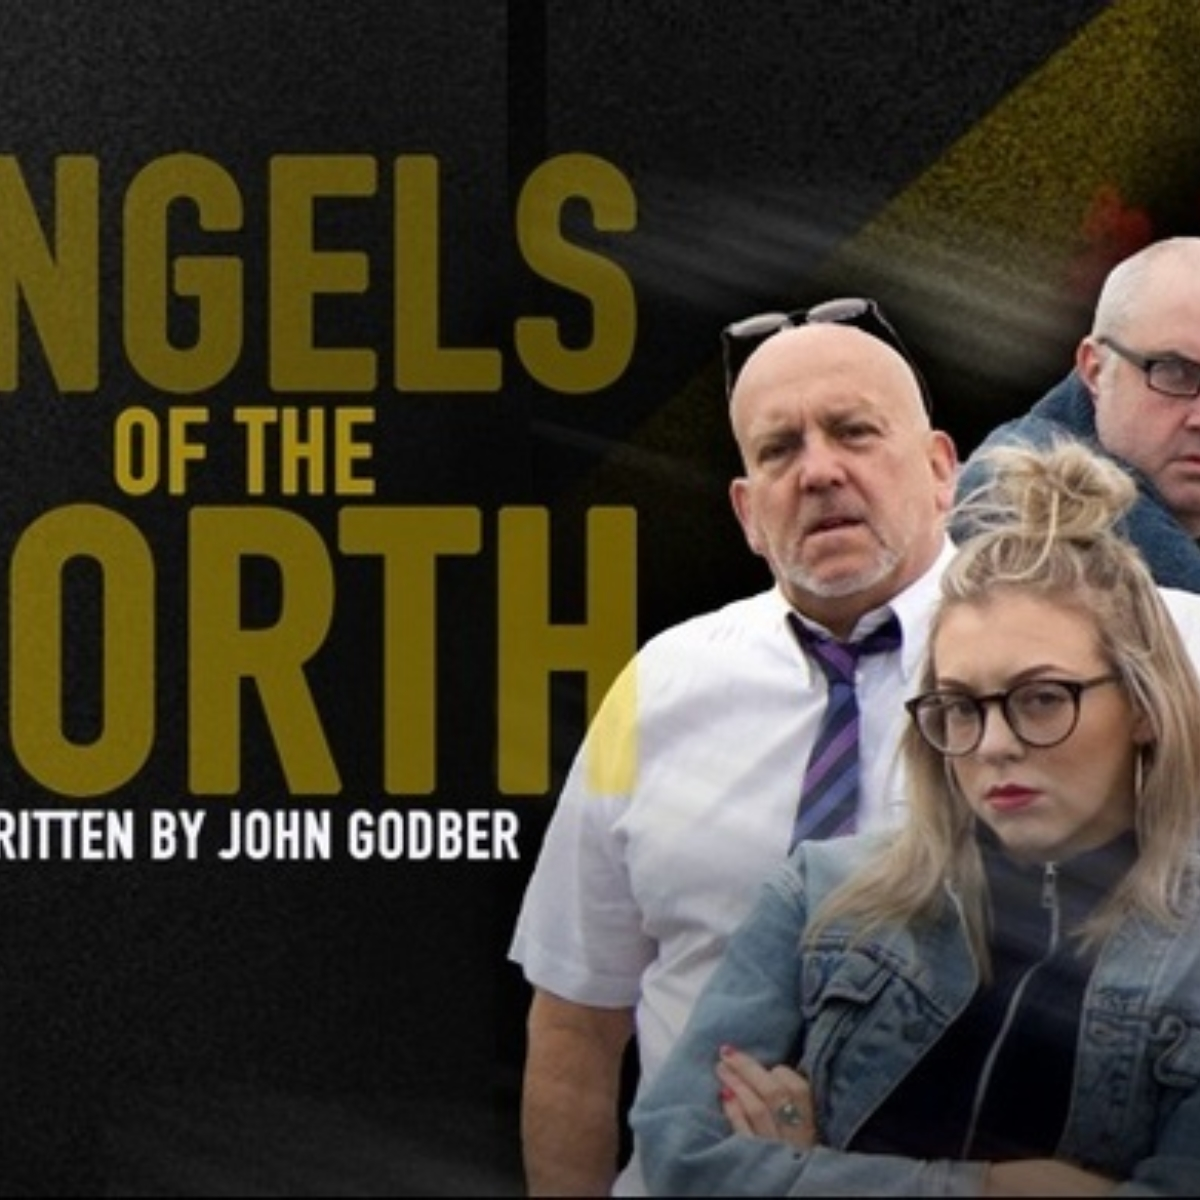 Angels of the North Images